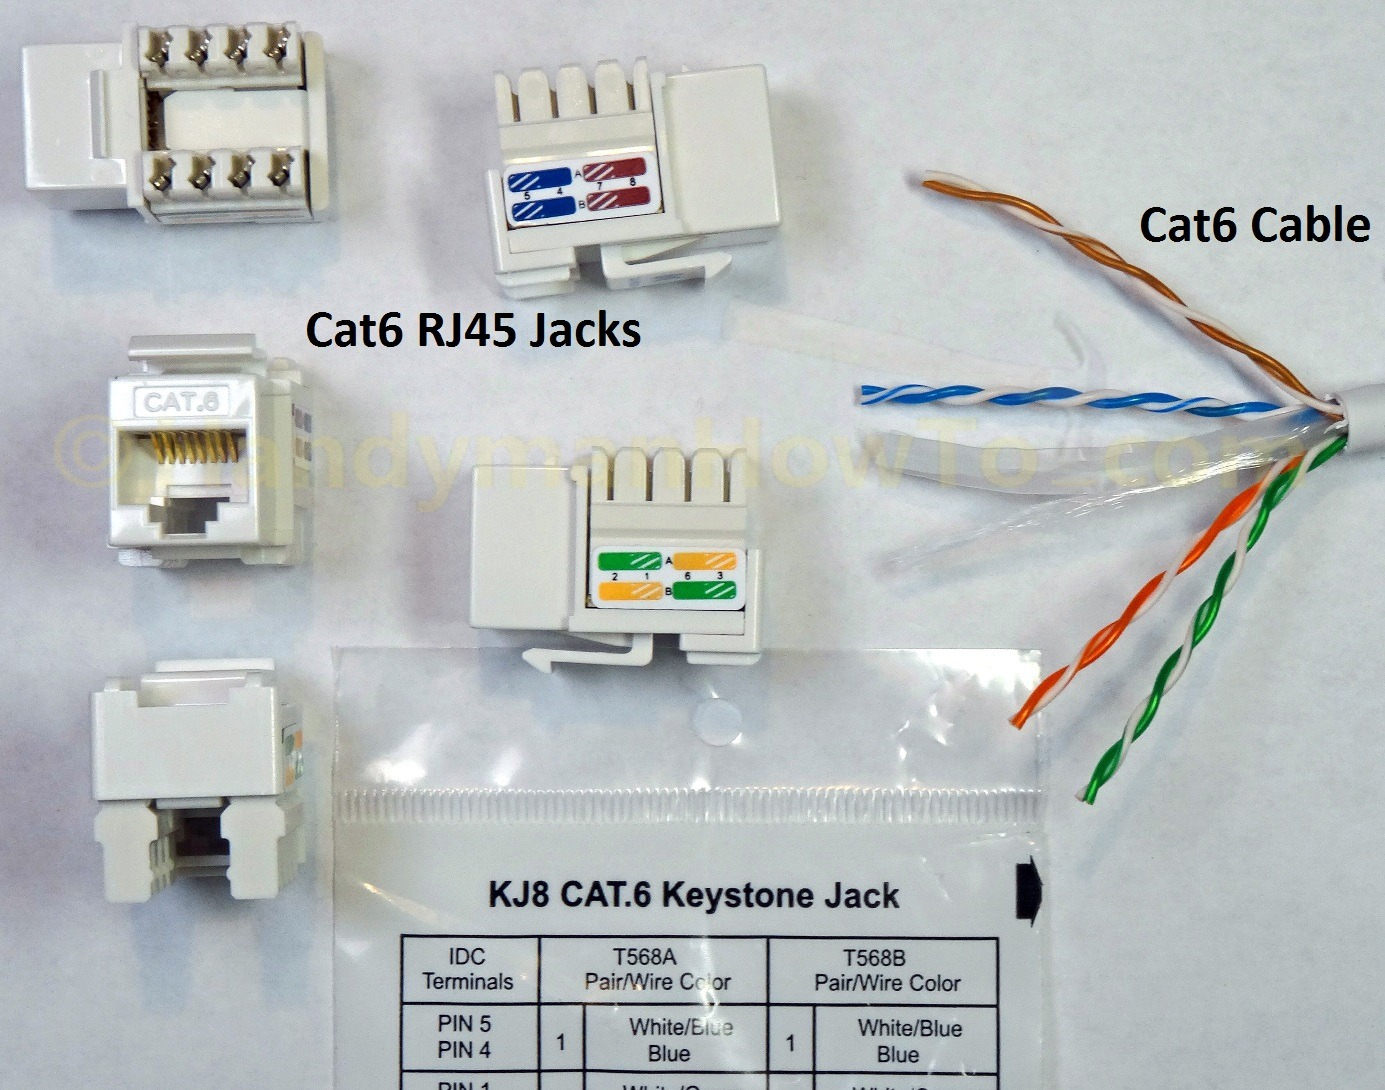 Rj45 Wiring Cat 6 Cable Diagram